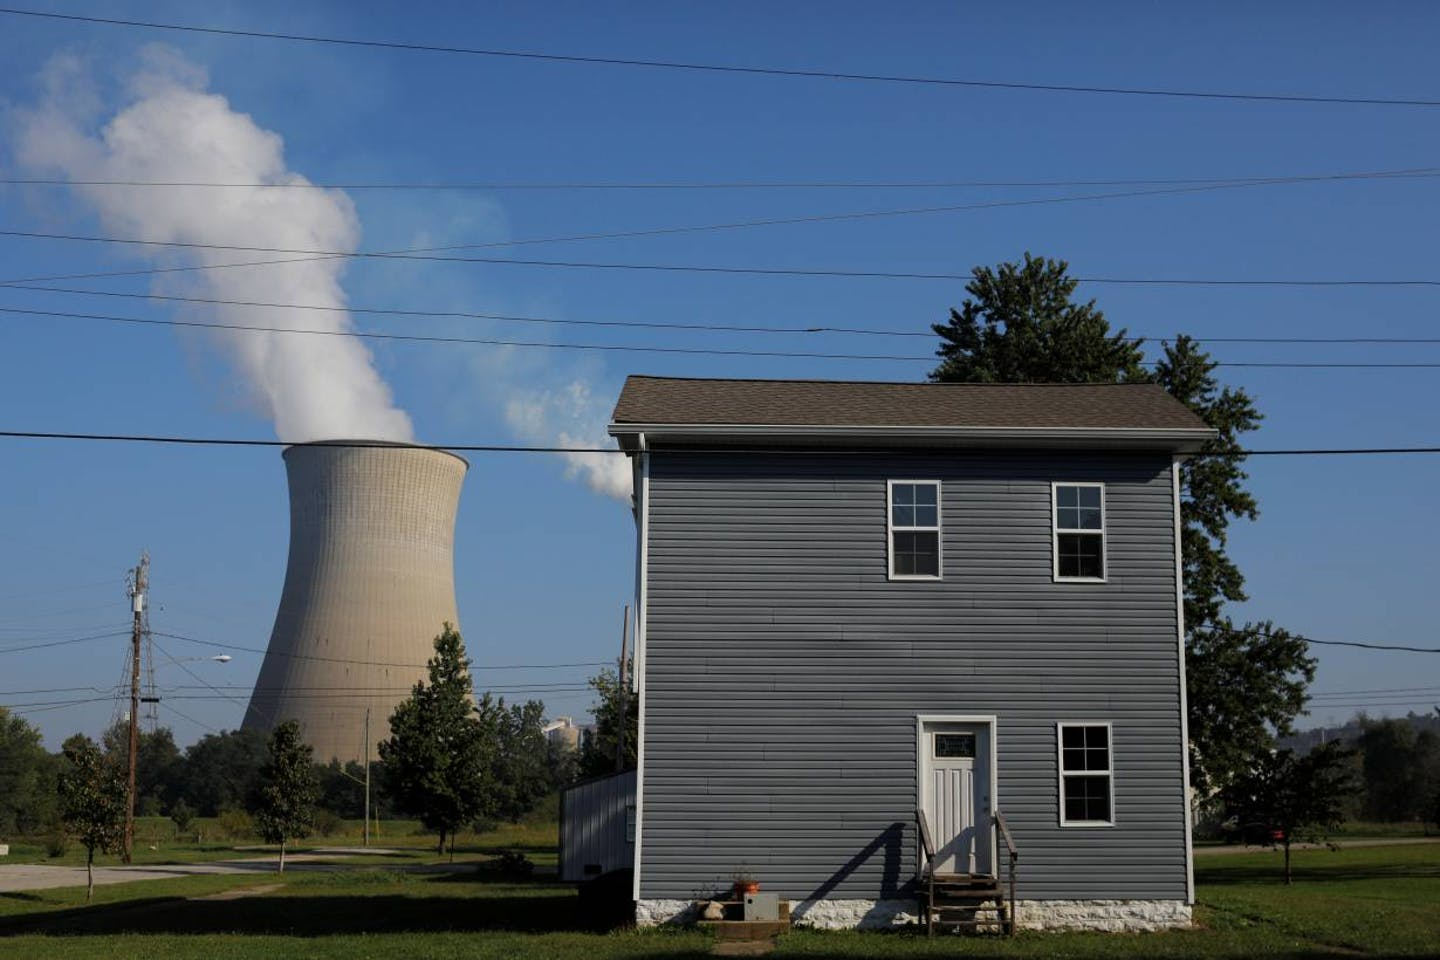 home near a coal plant in Moscow, Ohio